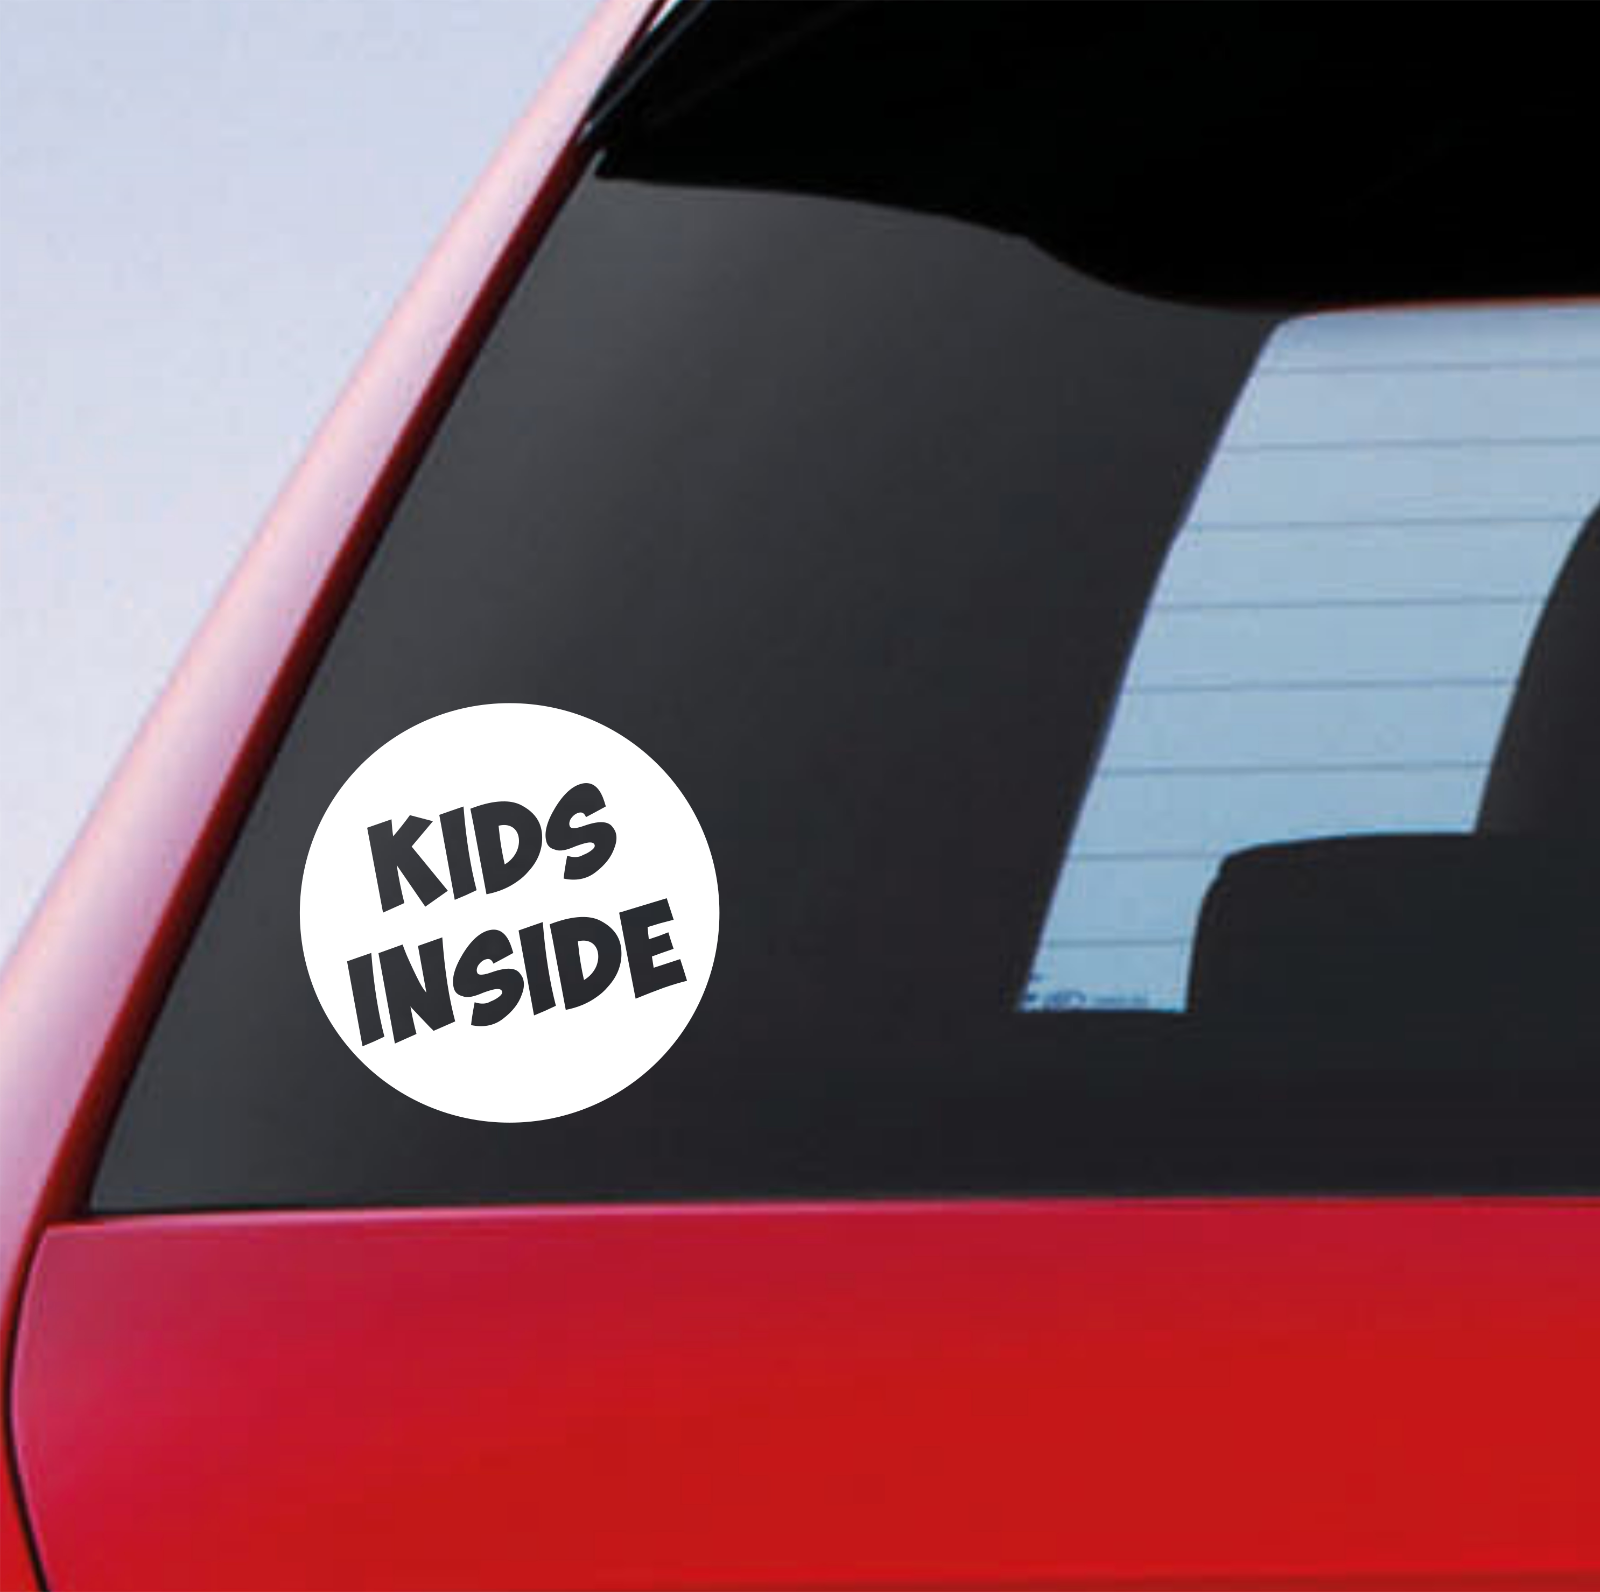 Kids Inside Car Sticker Funny Novelty On Board Child Baby Safety Warning Sign